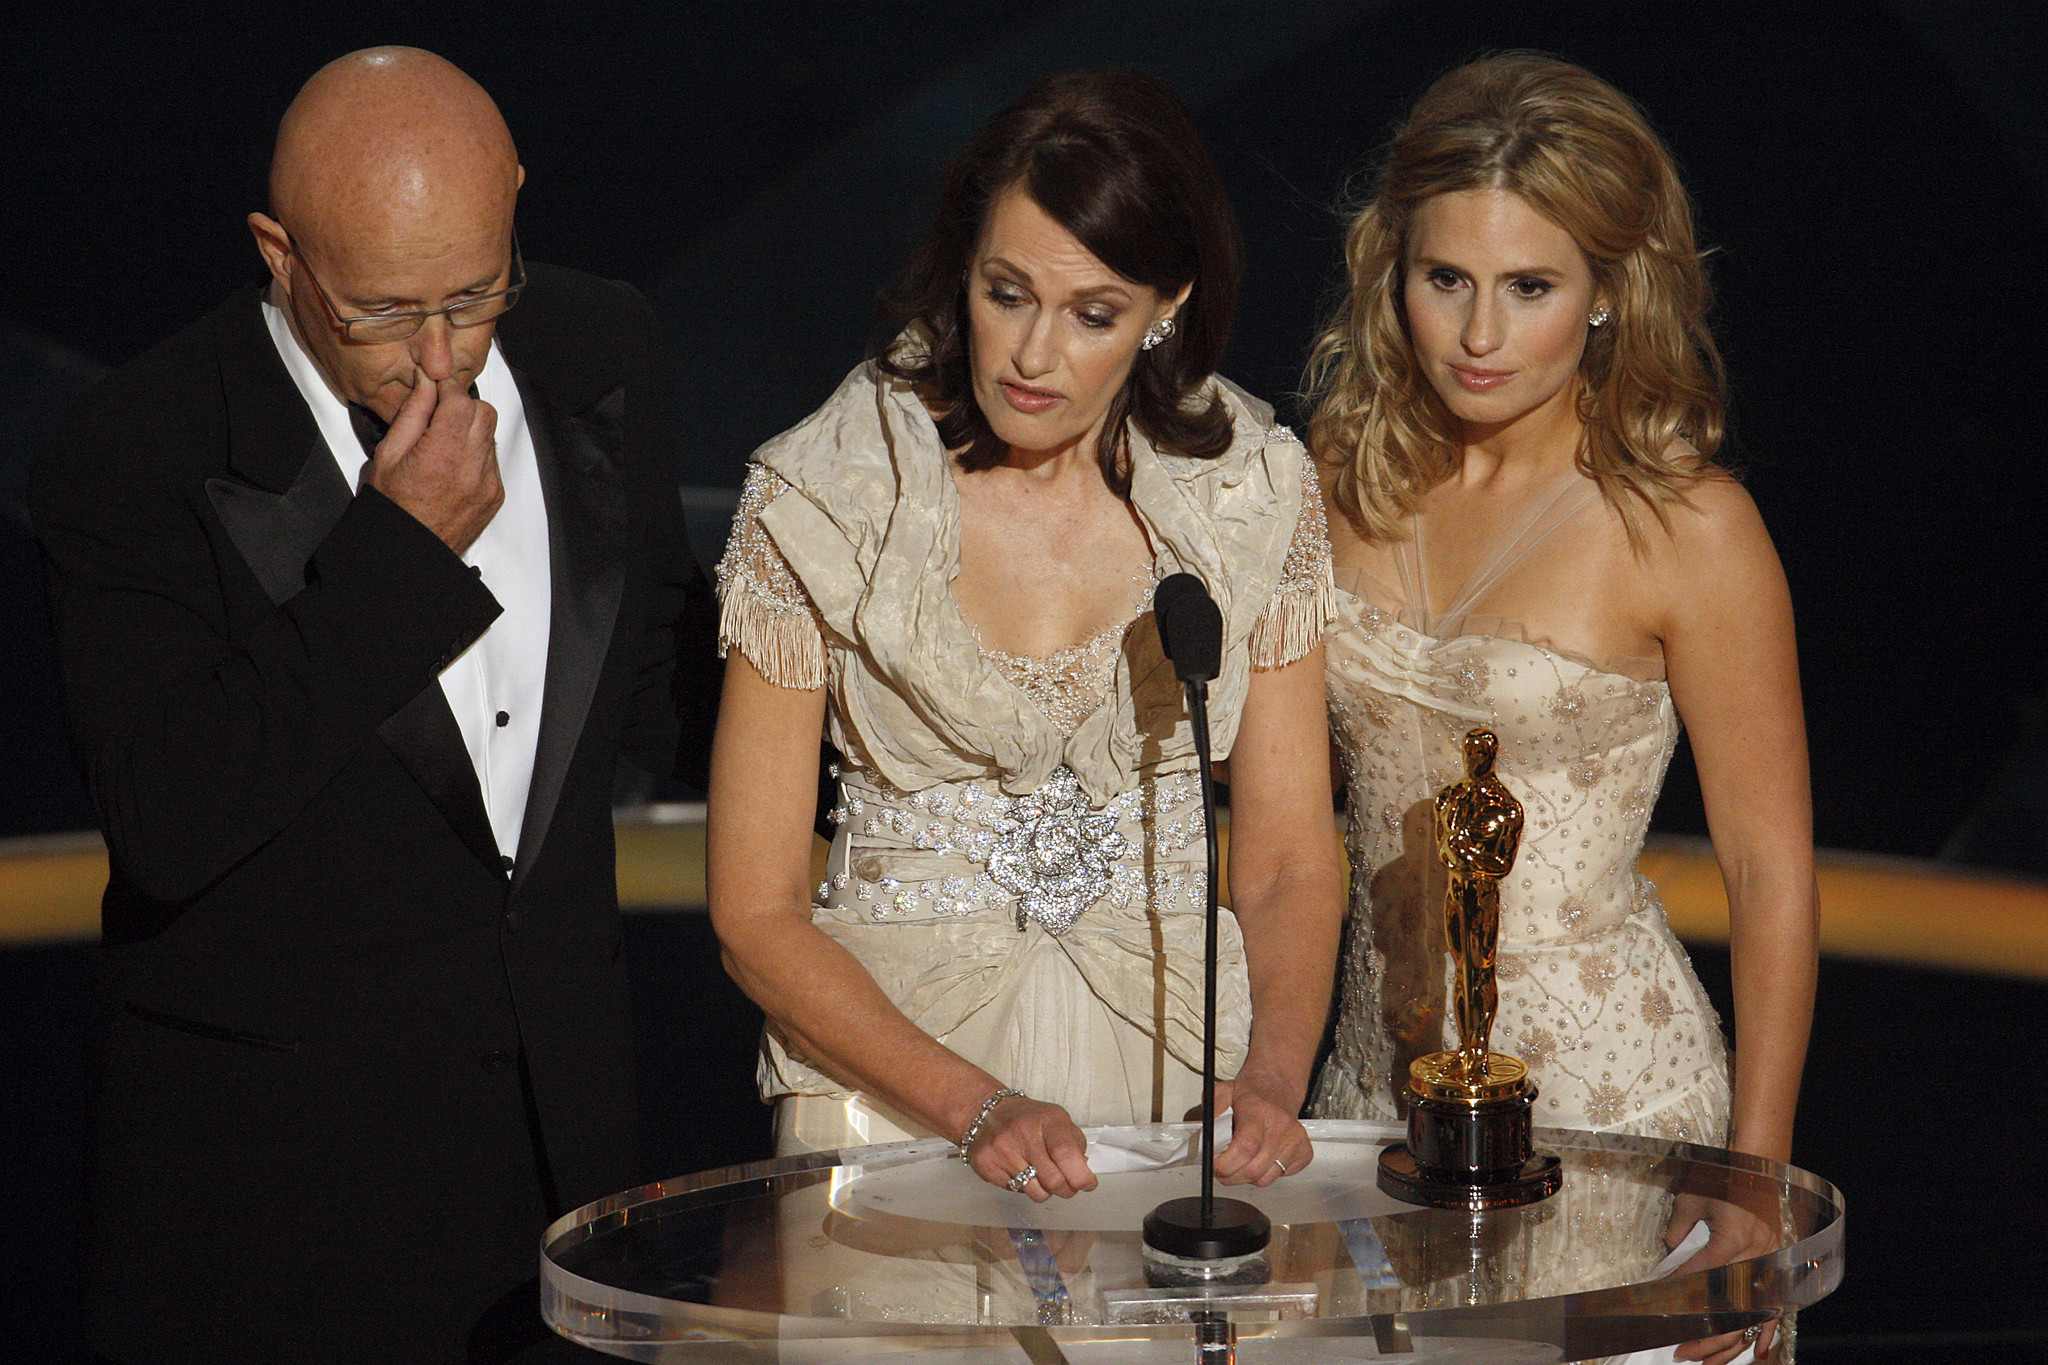 Accepting the supporting actor Oscar given posthumously to Heath Ledger, from right, Ledger's sister Kate, mother Sally Bell and father Kim at the 81st Annual Academy Awards on February 22, 2009.